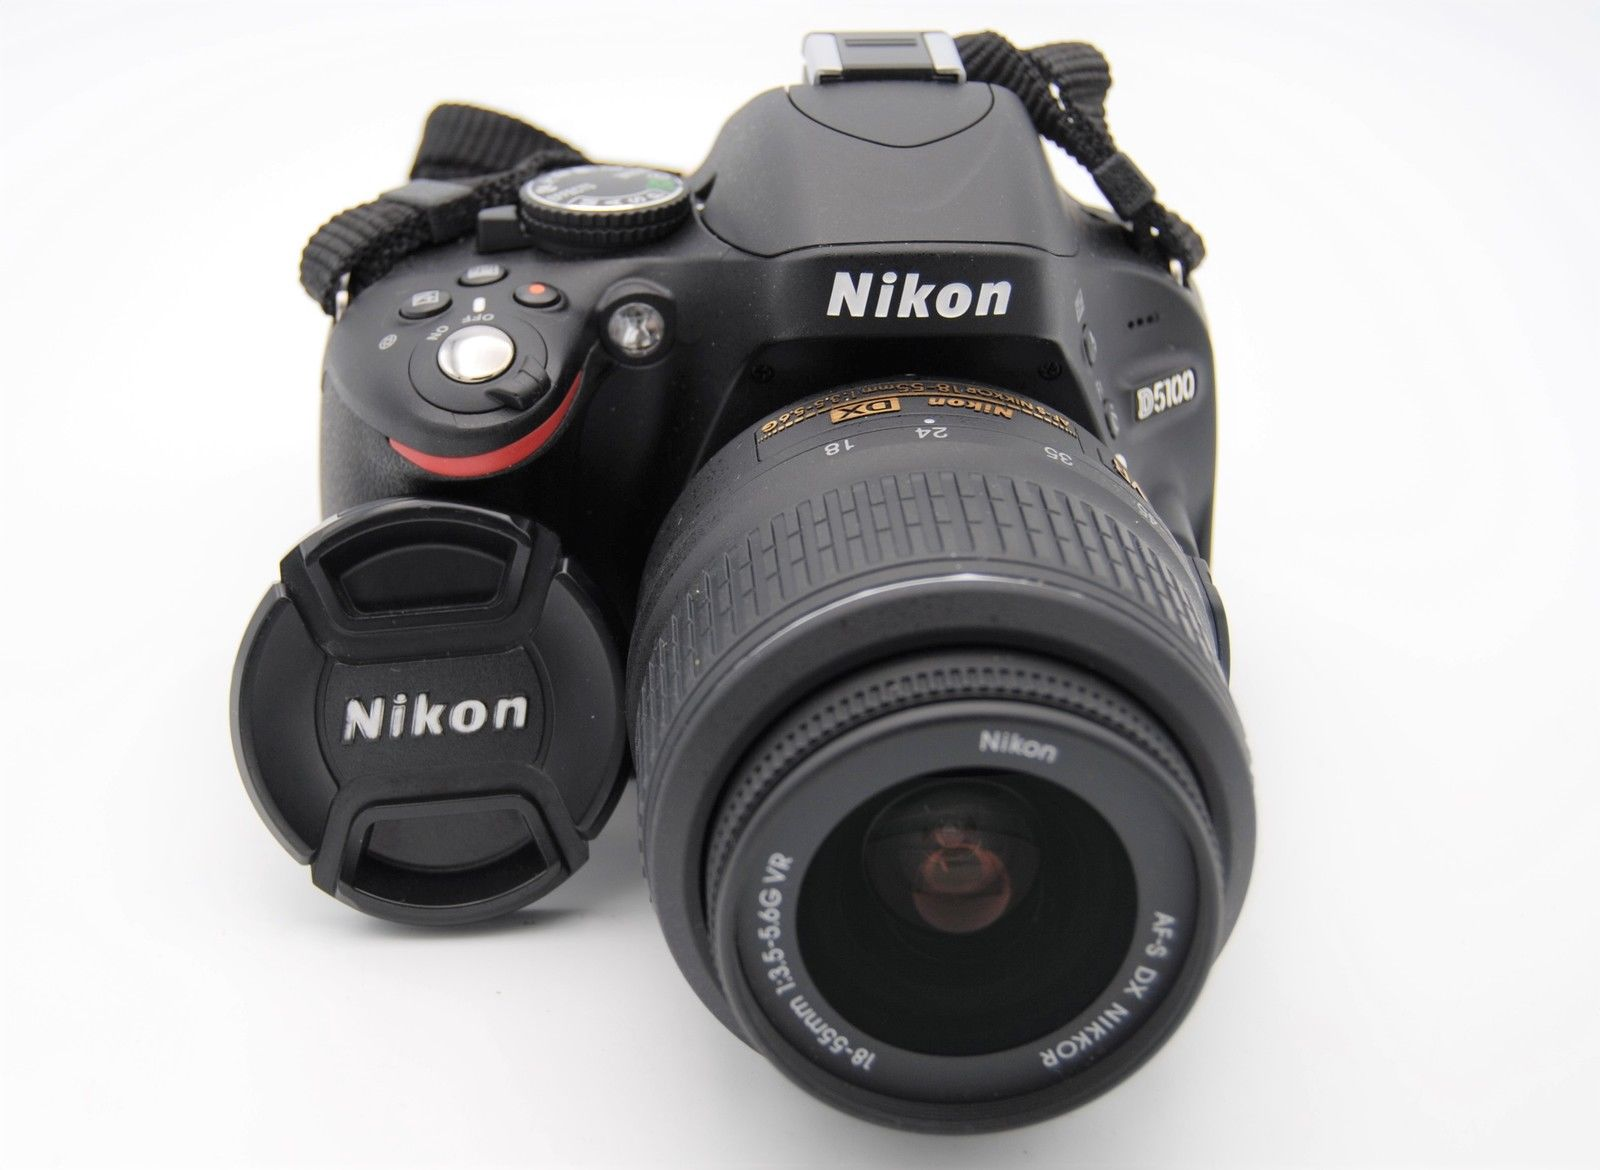 Reflex Camera Nikon D5100 Kit: review, features, reviews 63